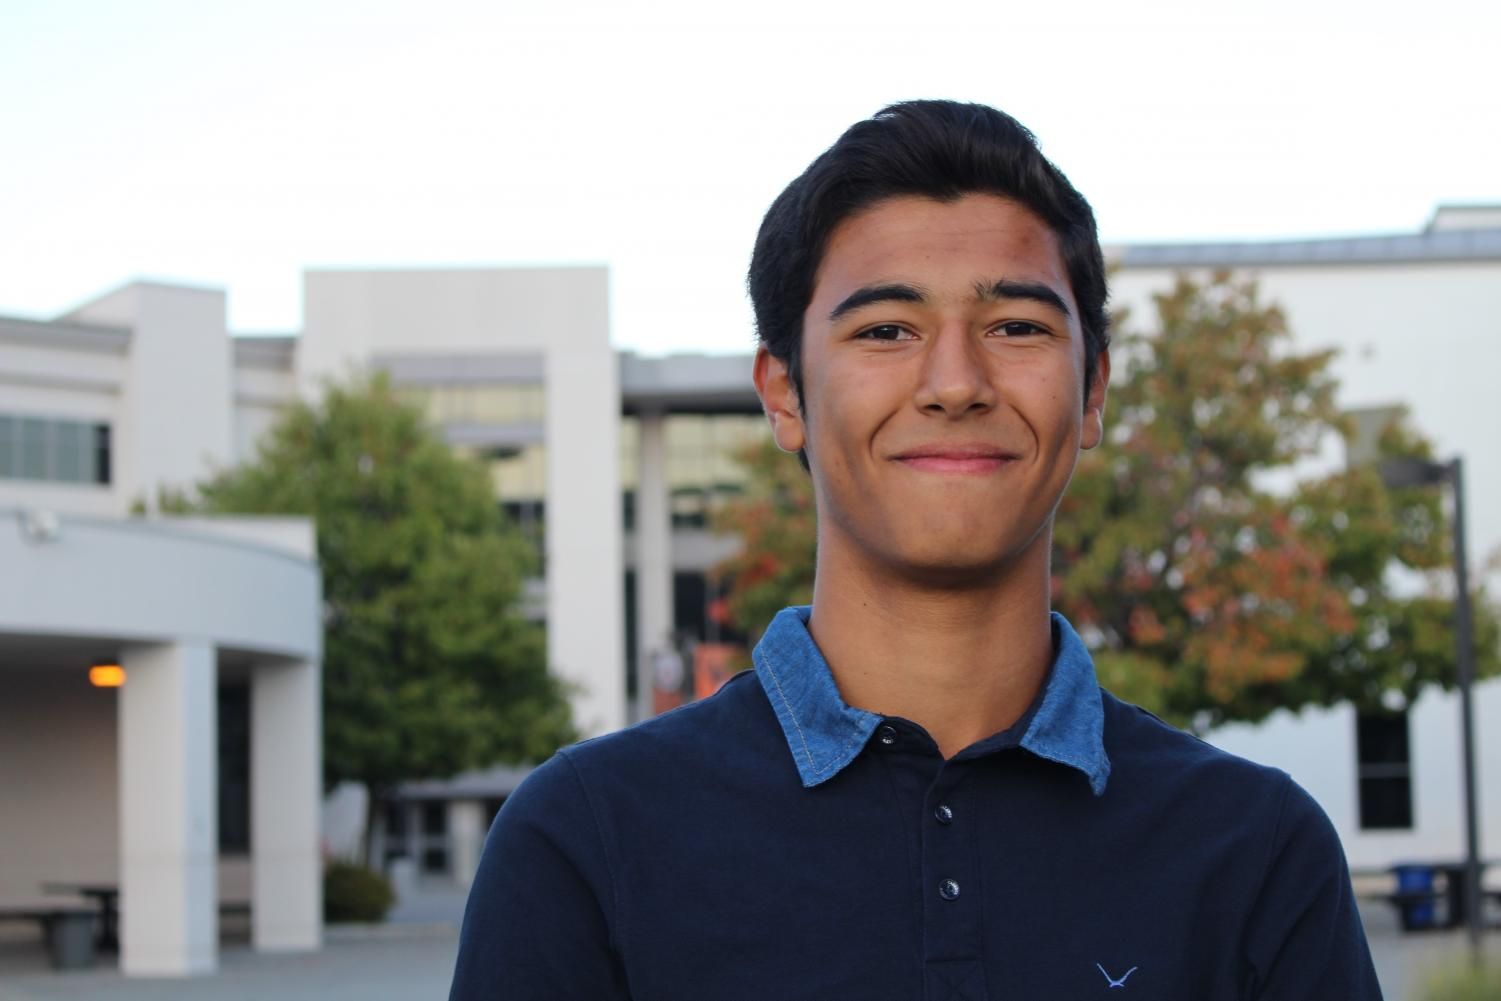 Former Wildcat and current Cal High junior Ali Turanalp discusses Islam and education from the perspective of his identity as a Turkish immigrant.